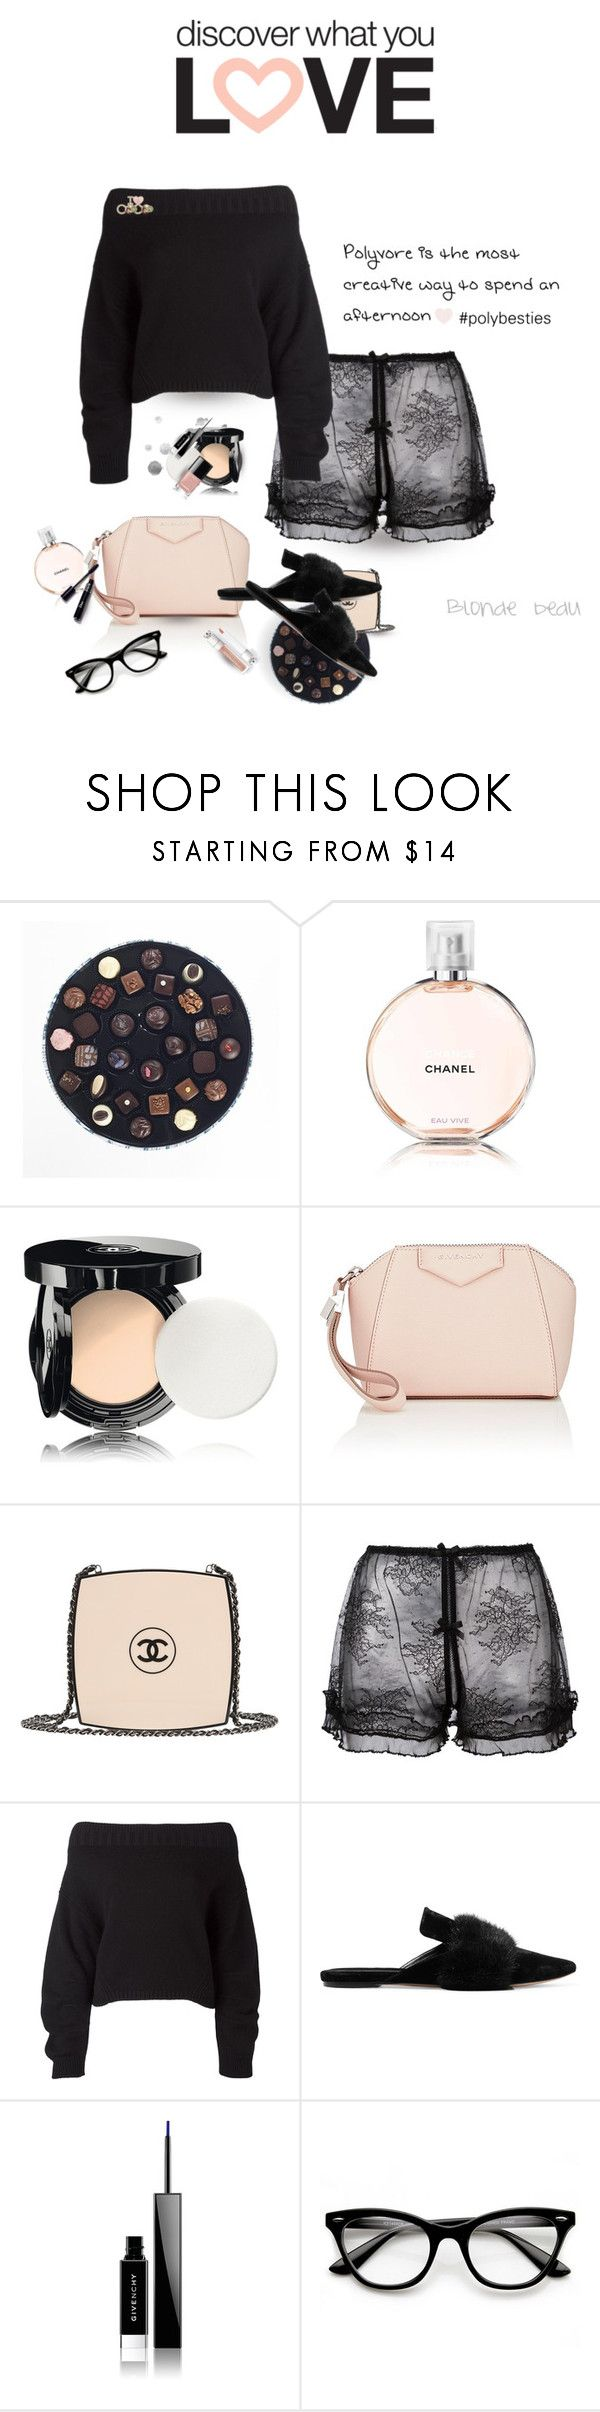 """""""Joy is contagious .. please read"""" by blonde-bedu ❤ liked on Polyvore featuring Chanel, Givenchy, FOLIES BY RENAUD, Opening Ceremony, Sanayi 313 and ZeroUV"""